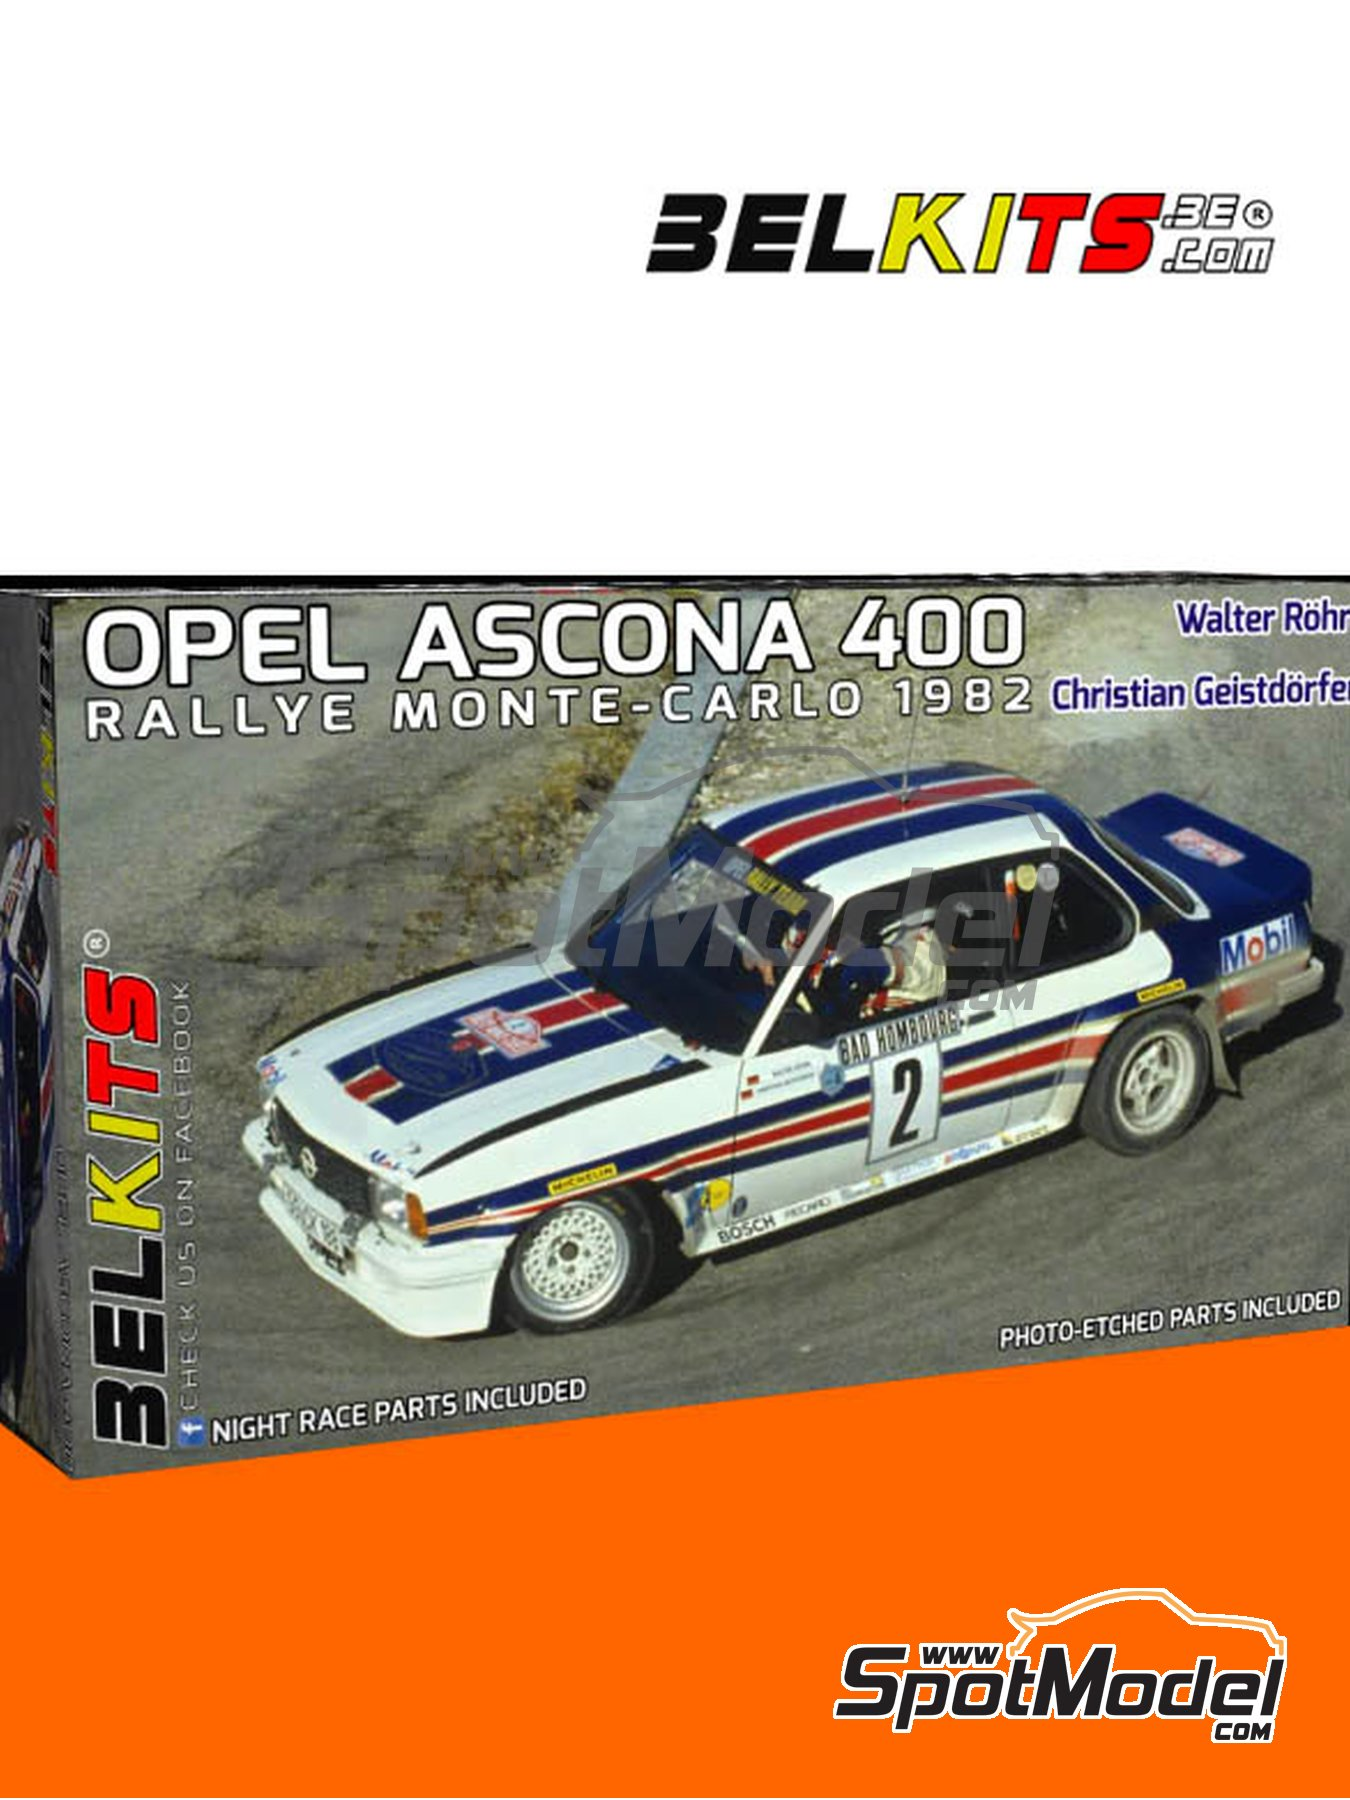 Opel Ascona 400 Rothmans - Montecarlo Rally - Rallye Automobile de Monte-Carlo 1982 | Model car kit in 1/24 scale manufactured by Belkits (ref. BEL020, also BEL-020) image